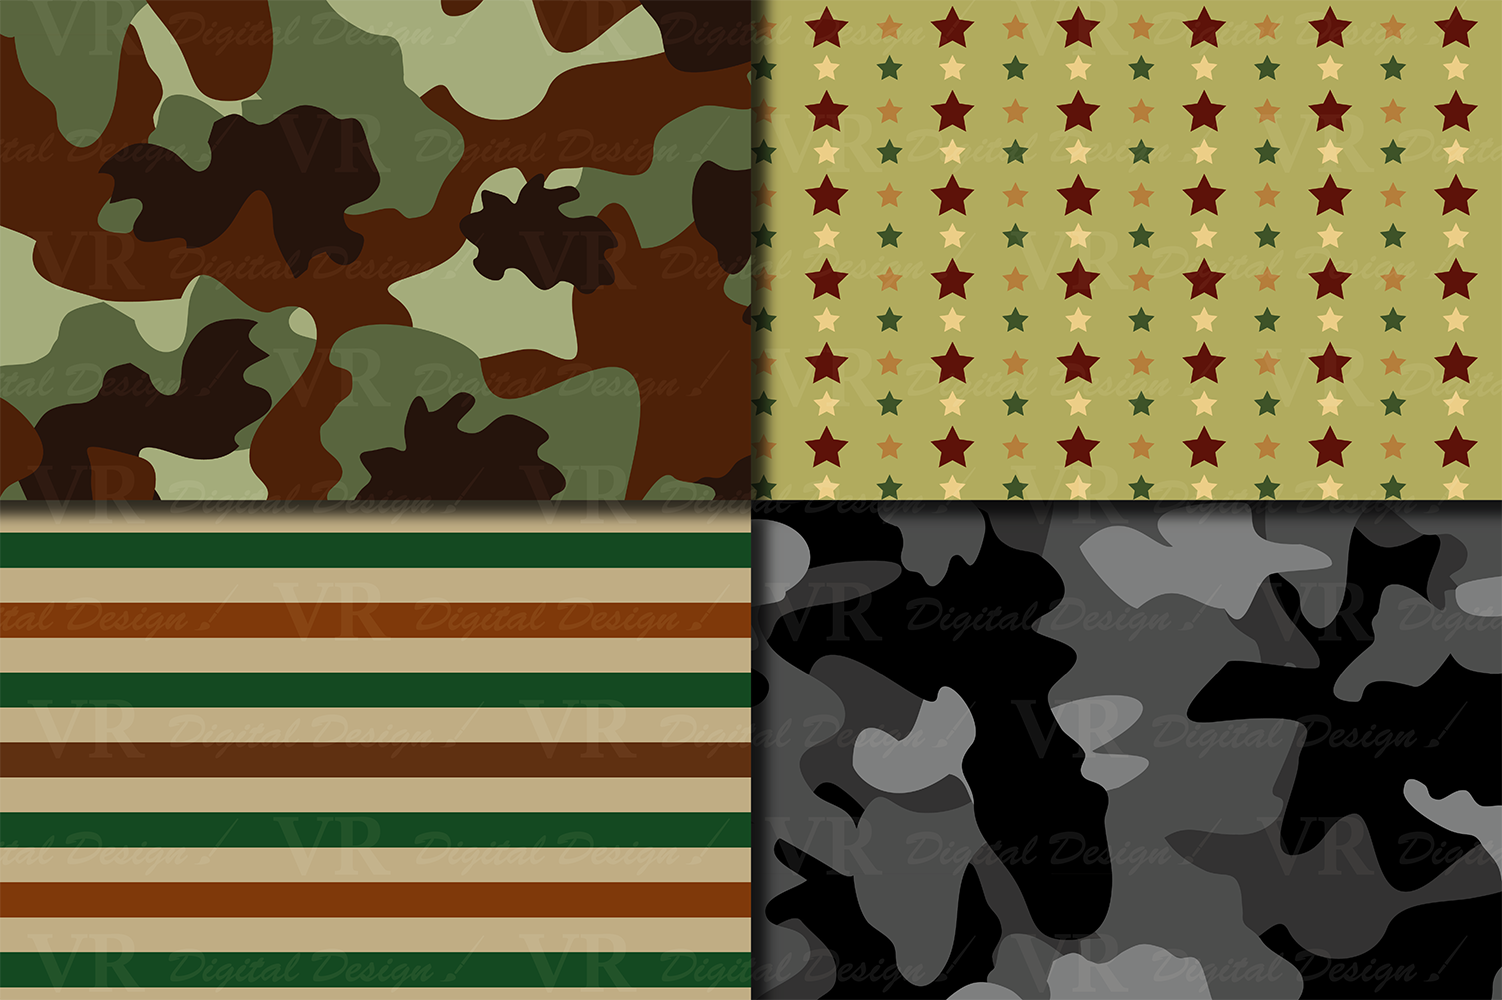 Military Digital Papers Graphic Backgrounds By VR Digital Design - Image 2